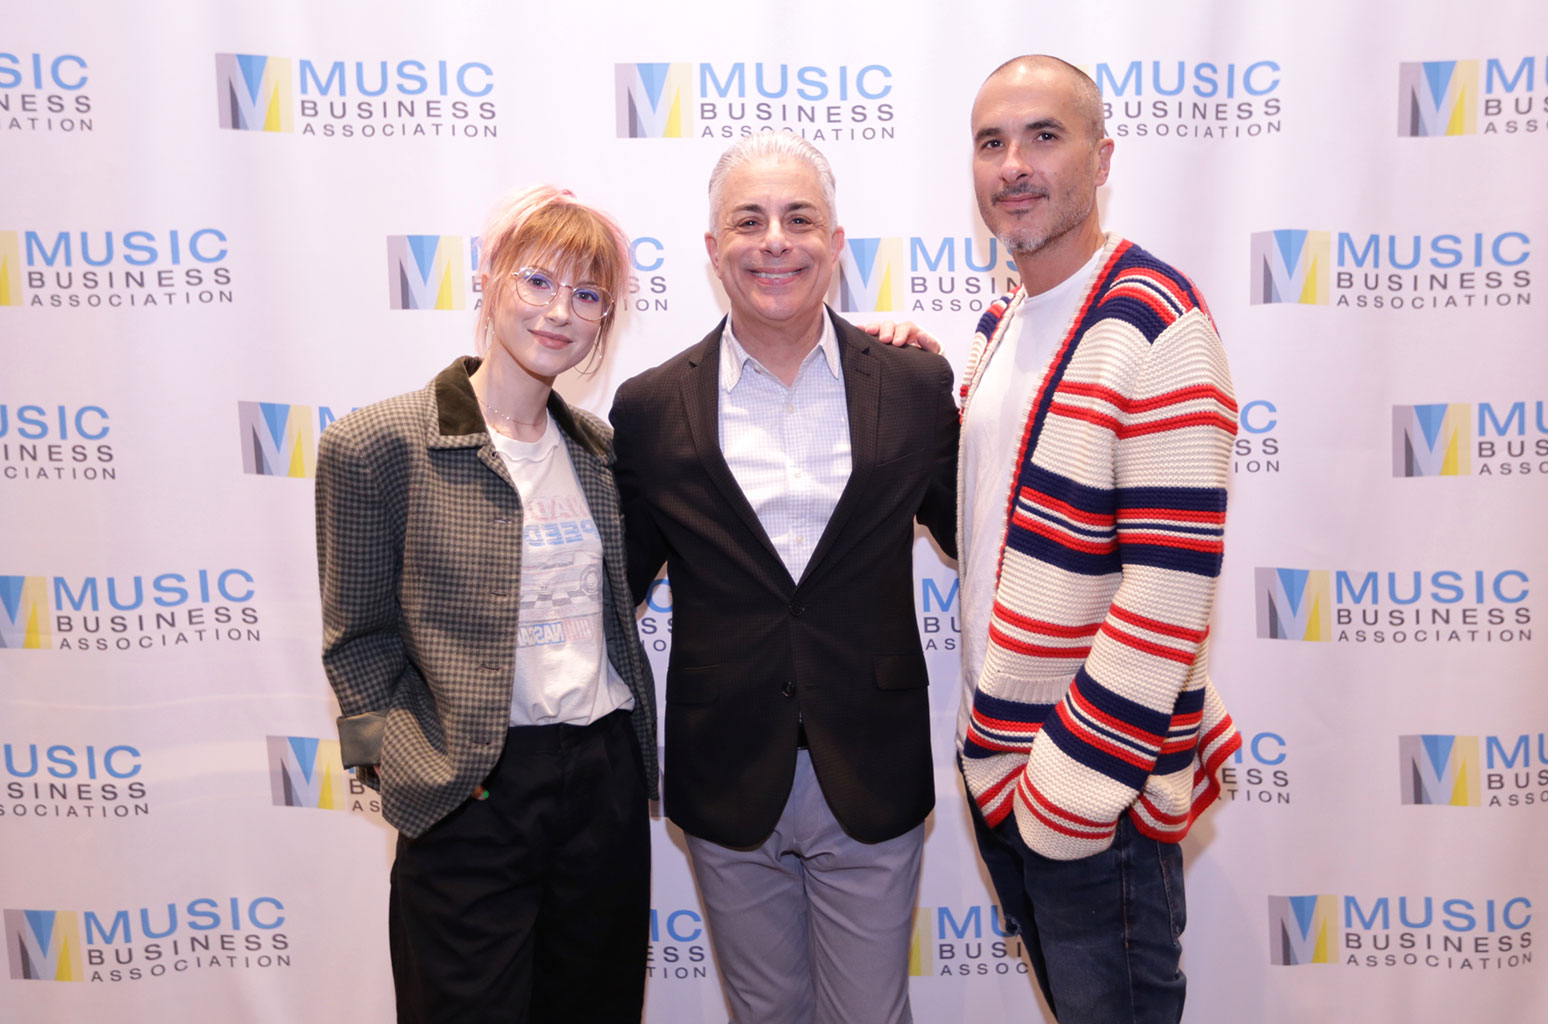 Billboard Names Brittany's Keynote With Richard Gottehrer Top 5 Music Biz Highlight